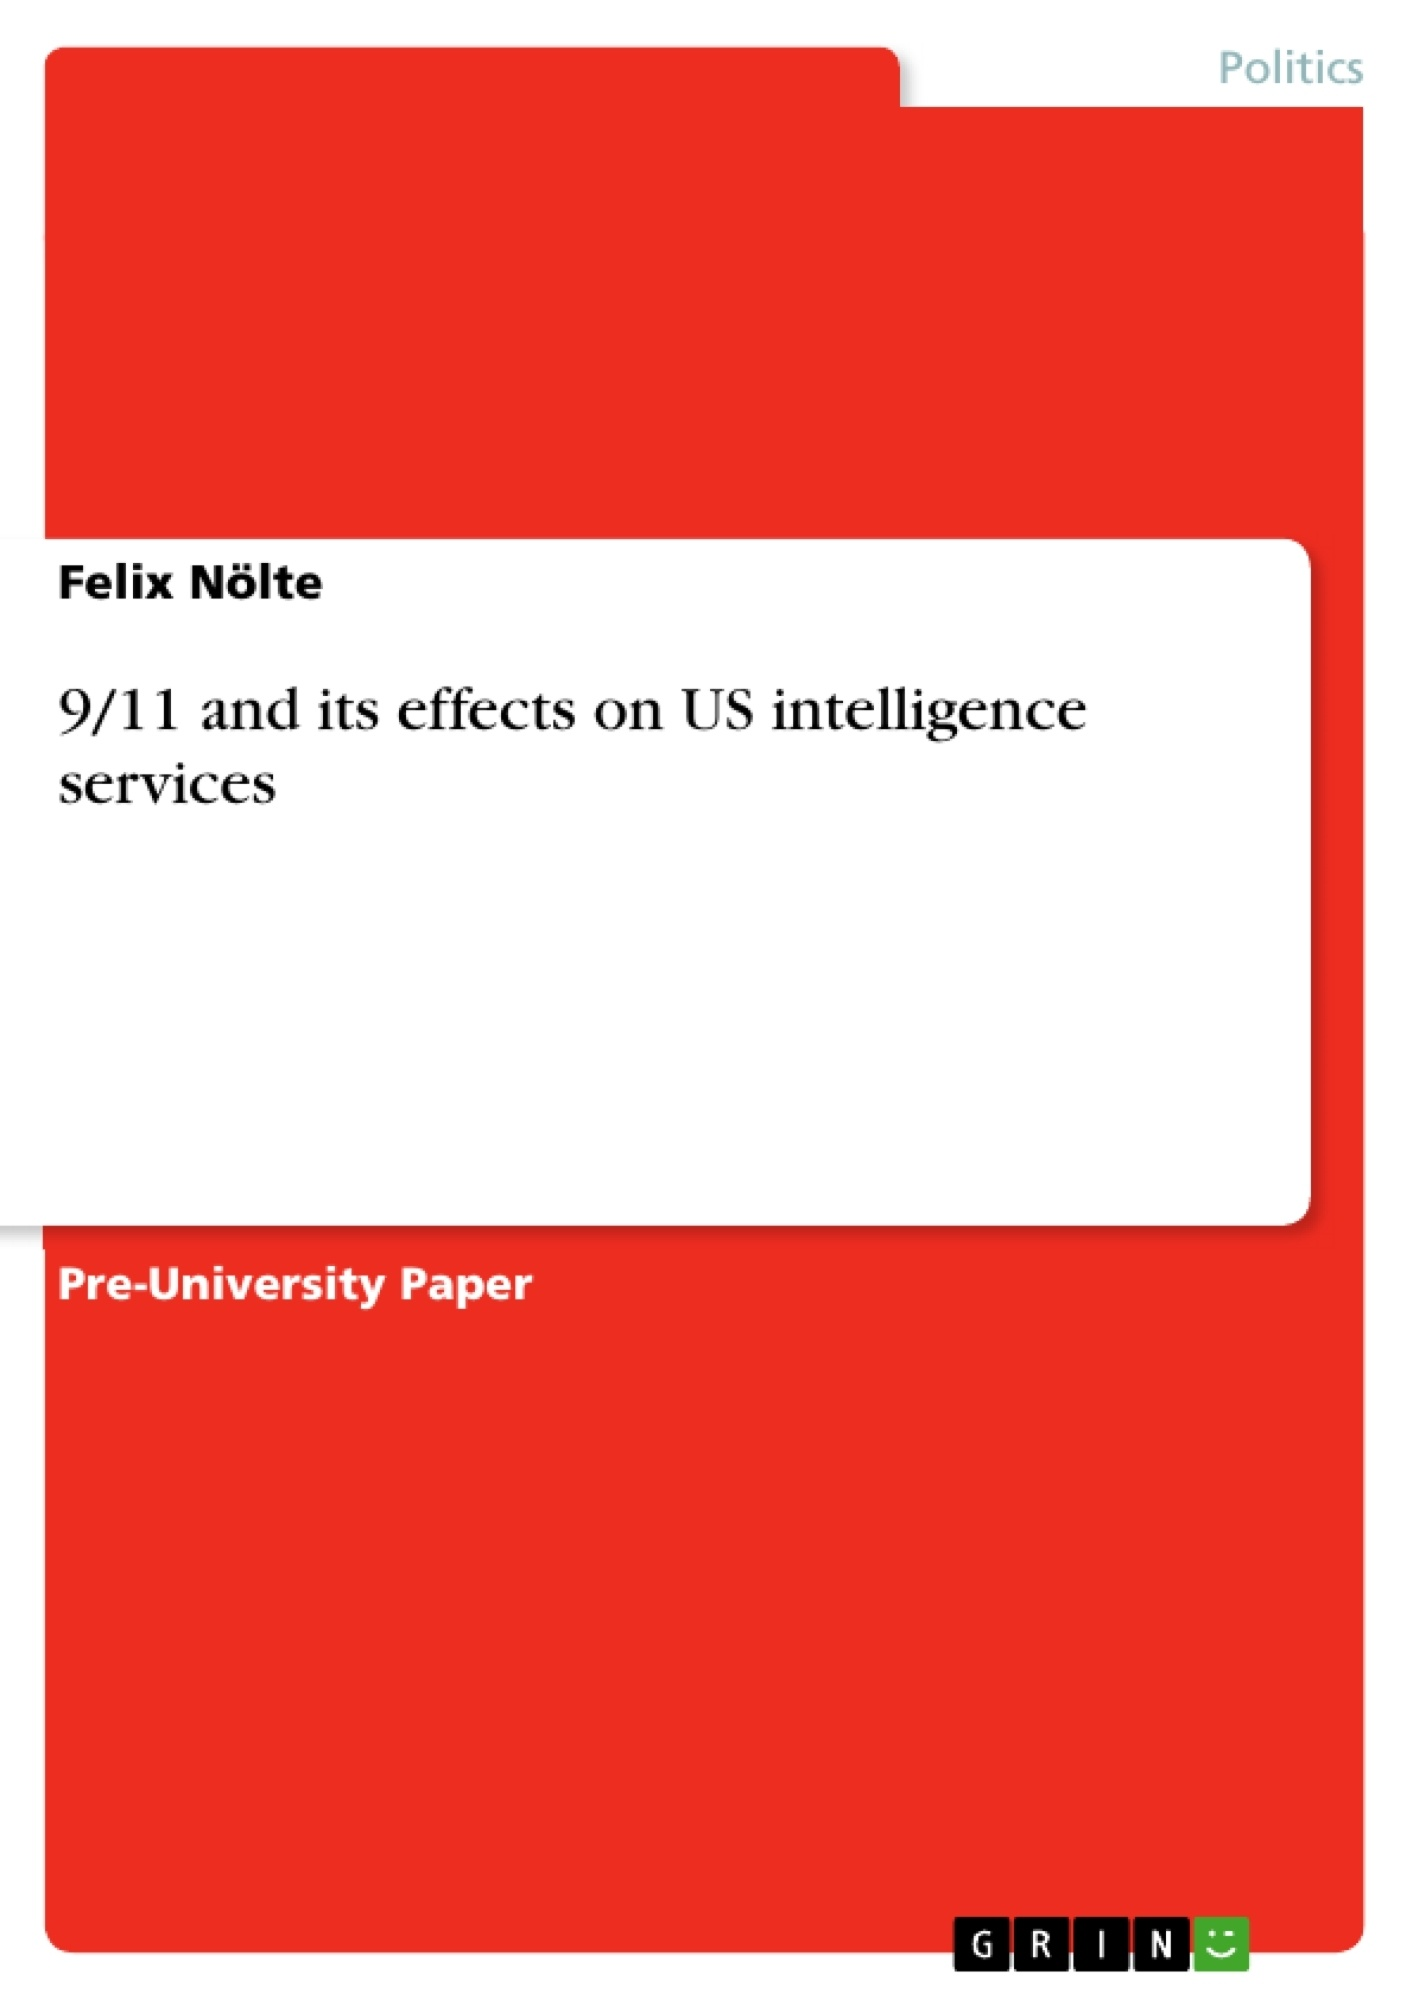 Title: 9/11 and its effects on US intelligence services